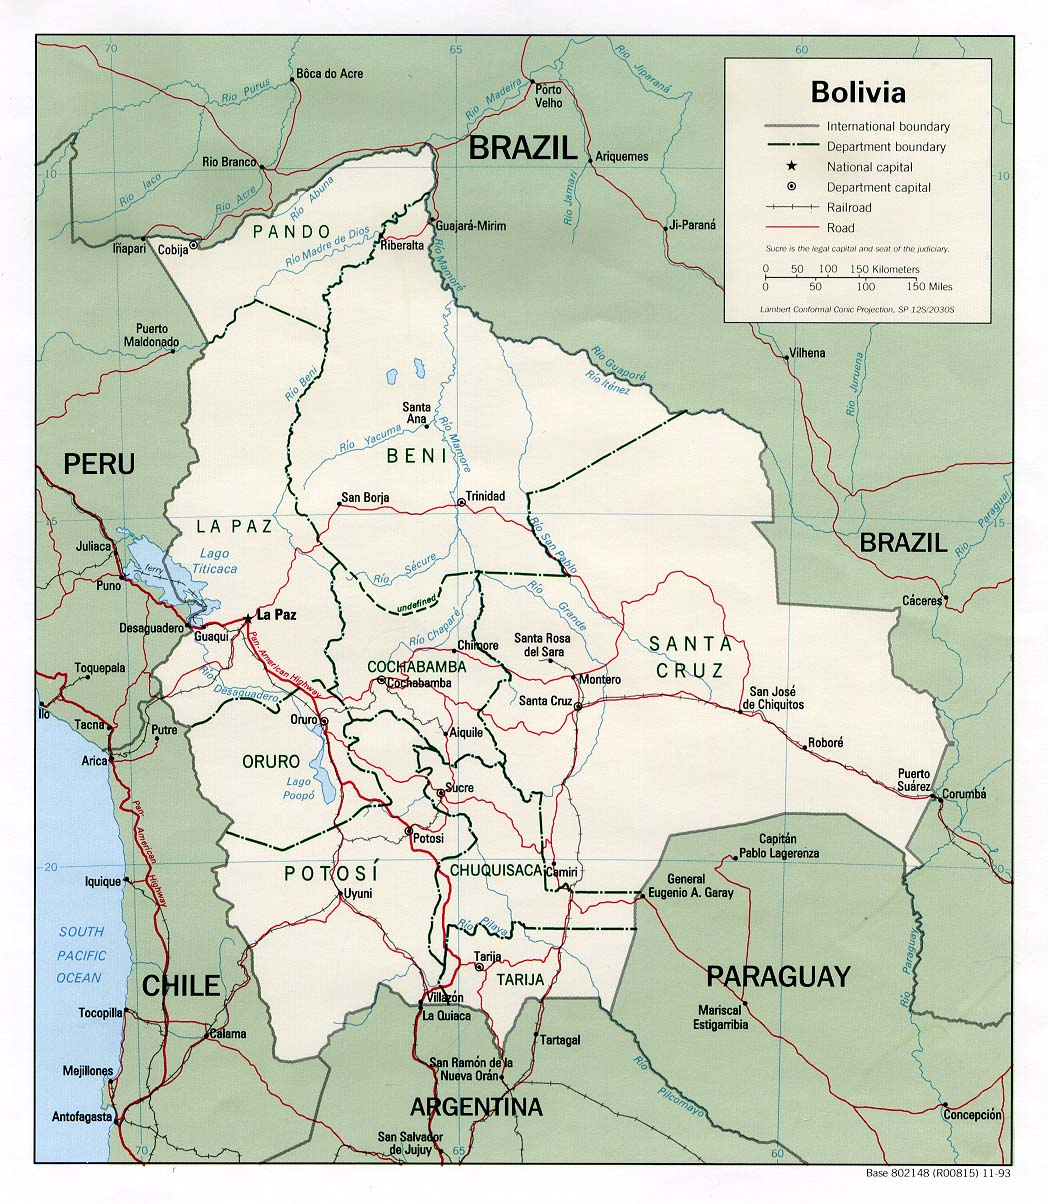 Bolivia Maps - Perry-Castañeda Map Collection - UT Library Online